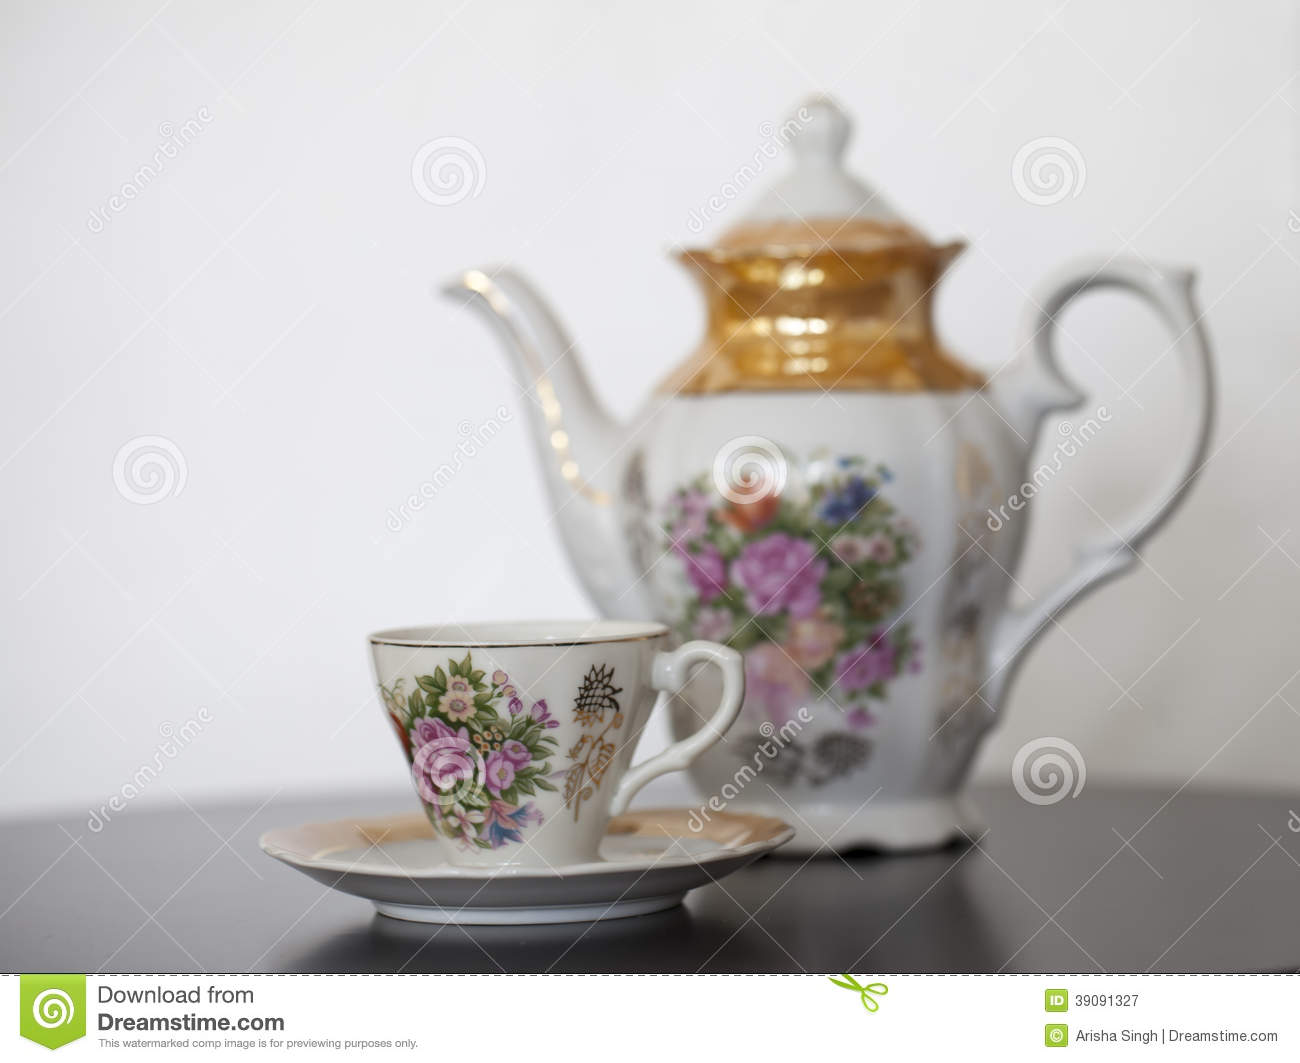 Antique Porcelain Teapot With Cup And Saucer Stock Image